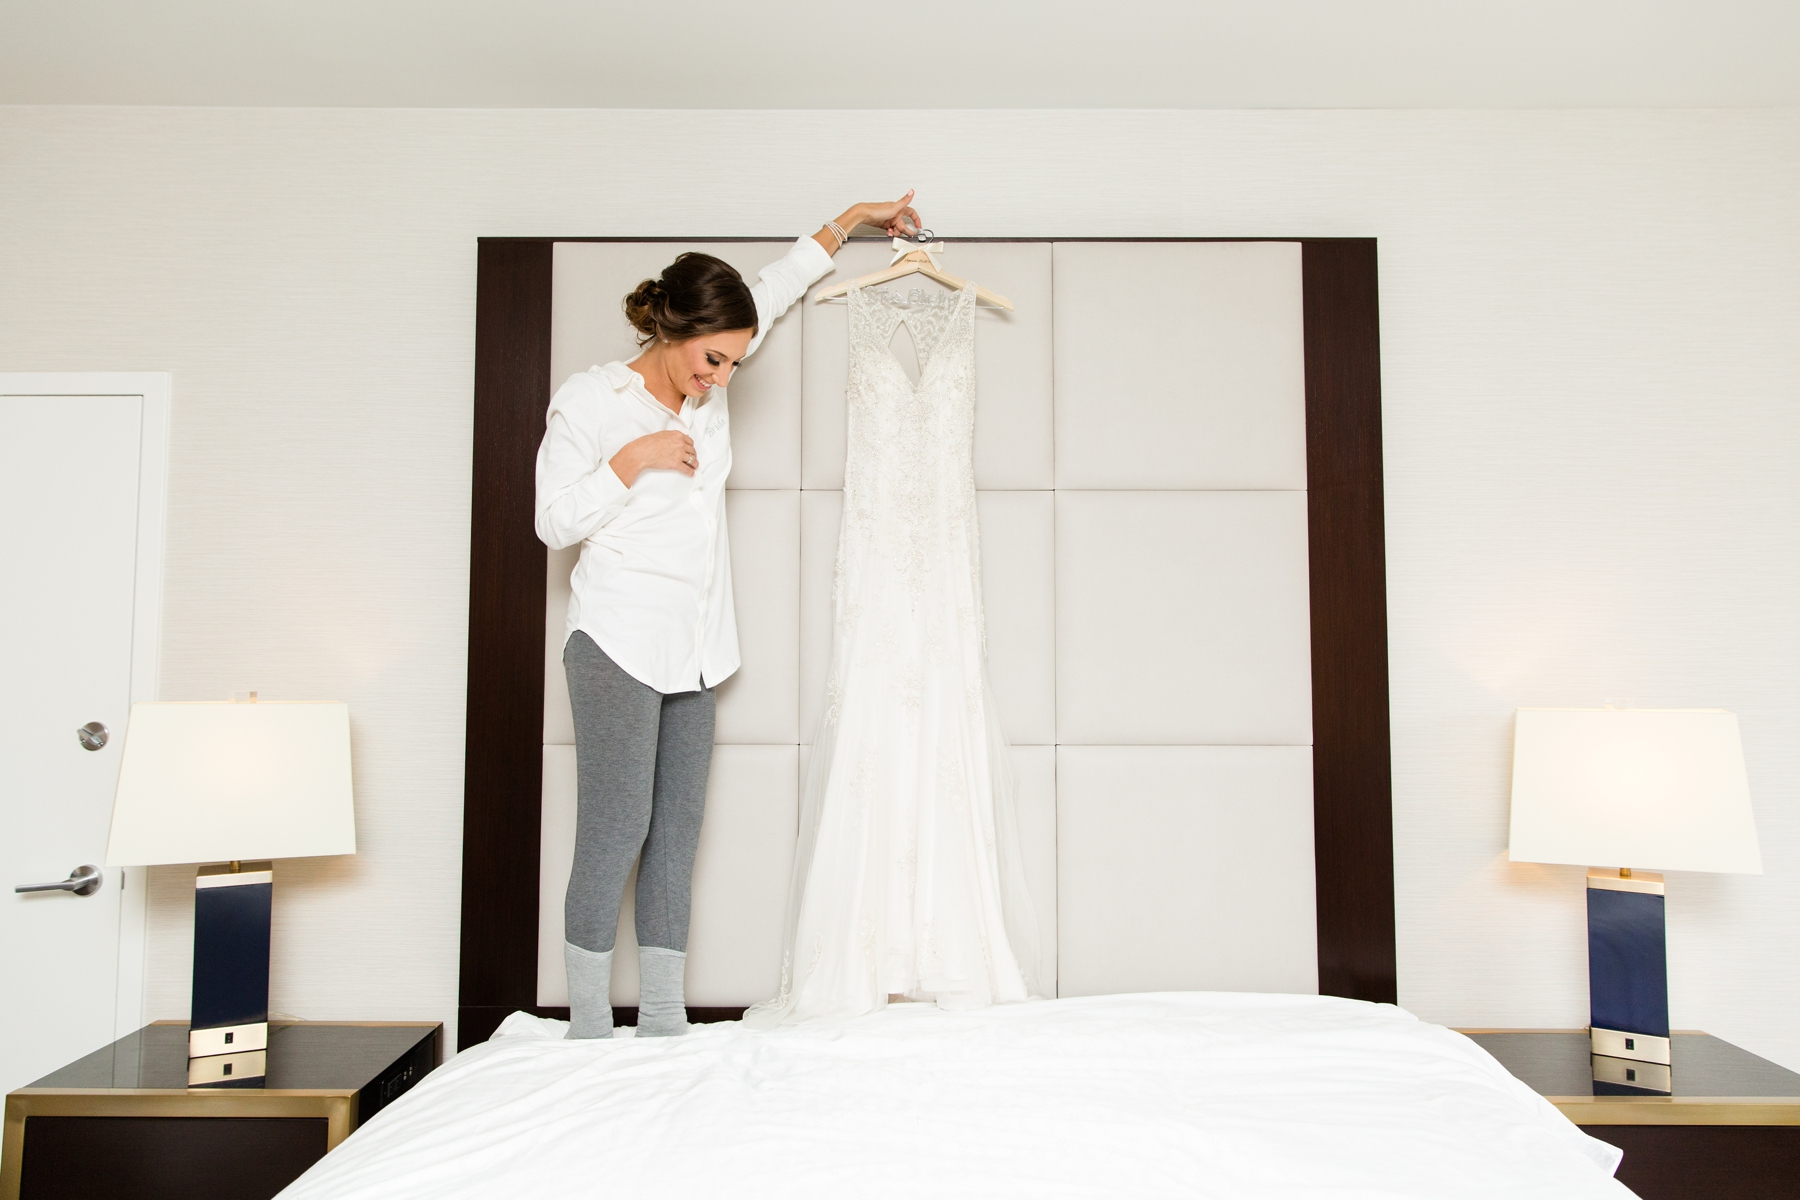 Kristen + Adam's Ivory, Gold, and Black Wedding at the Sheraton in Eatontown